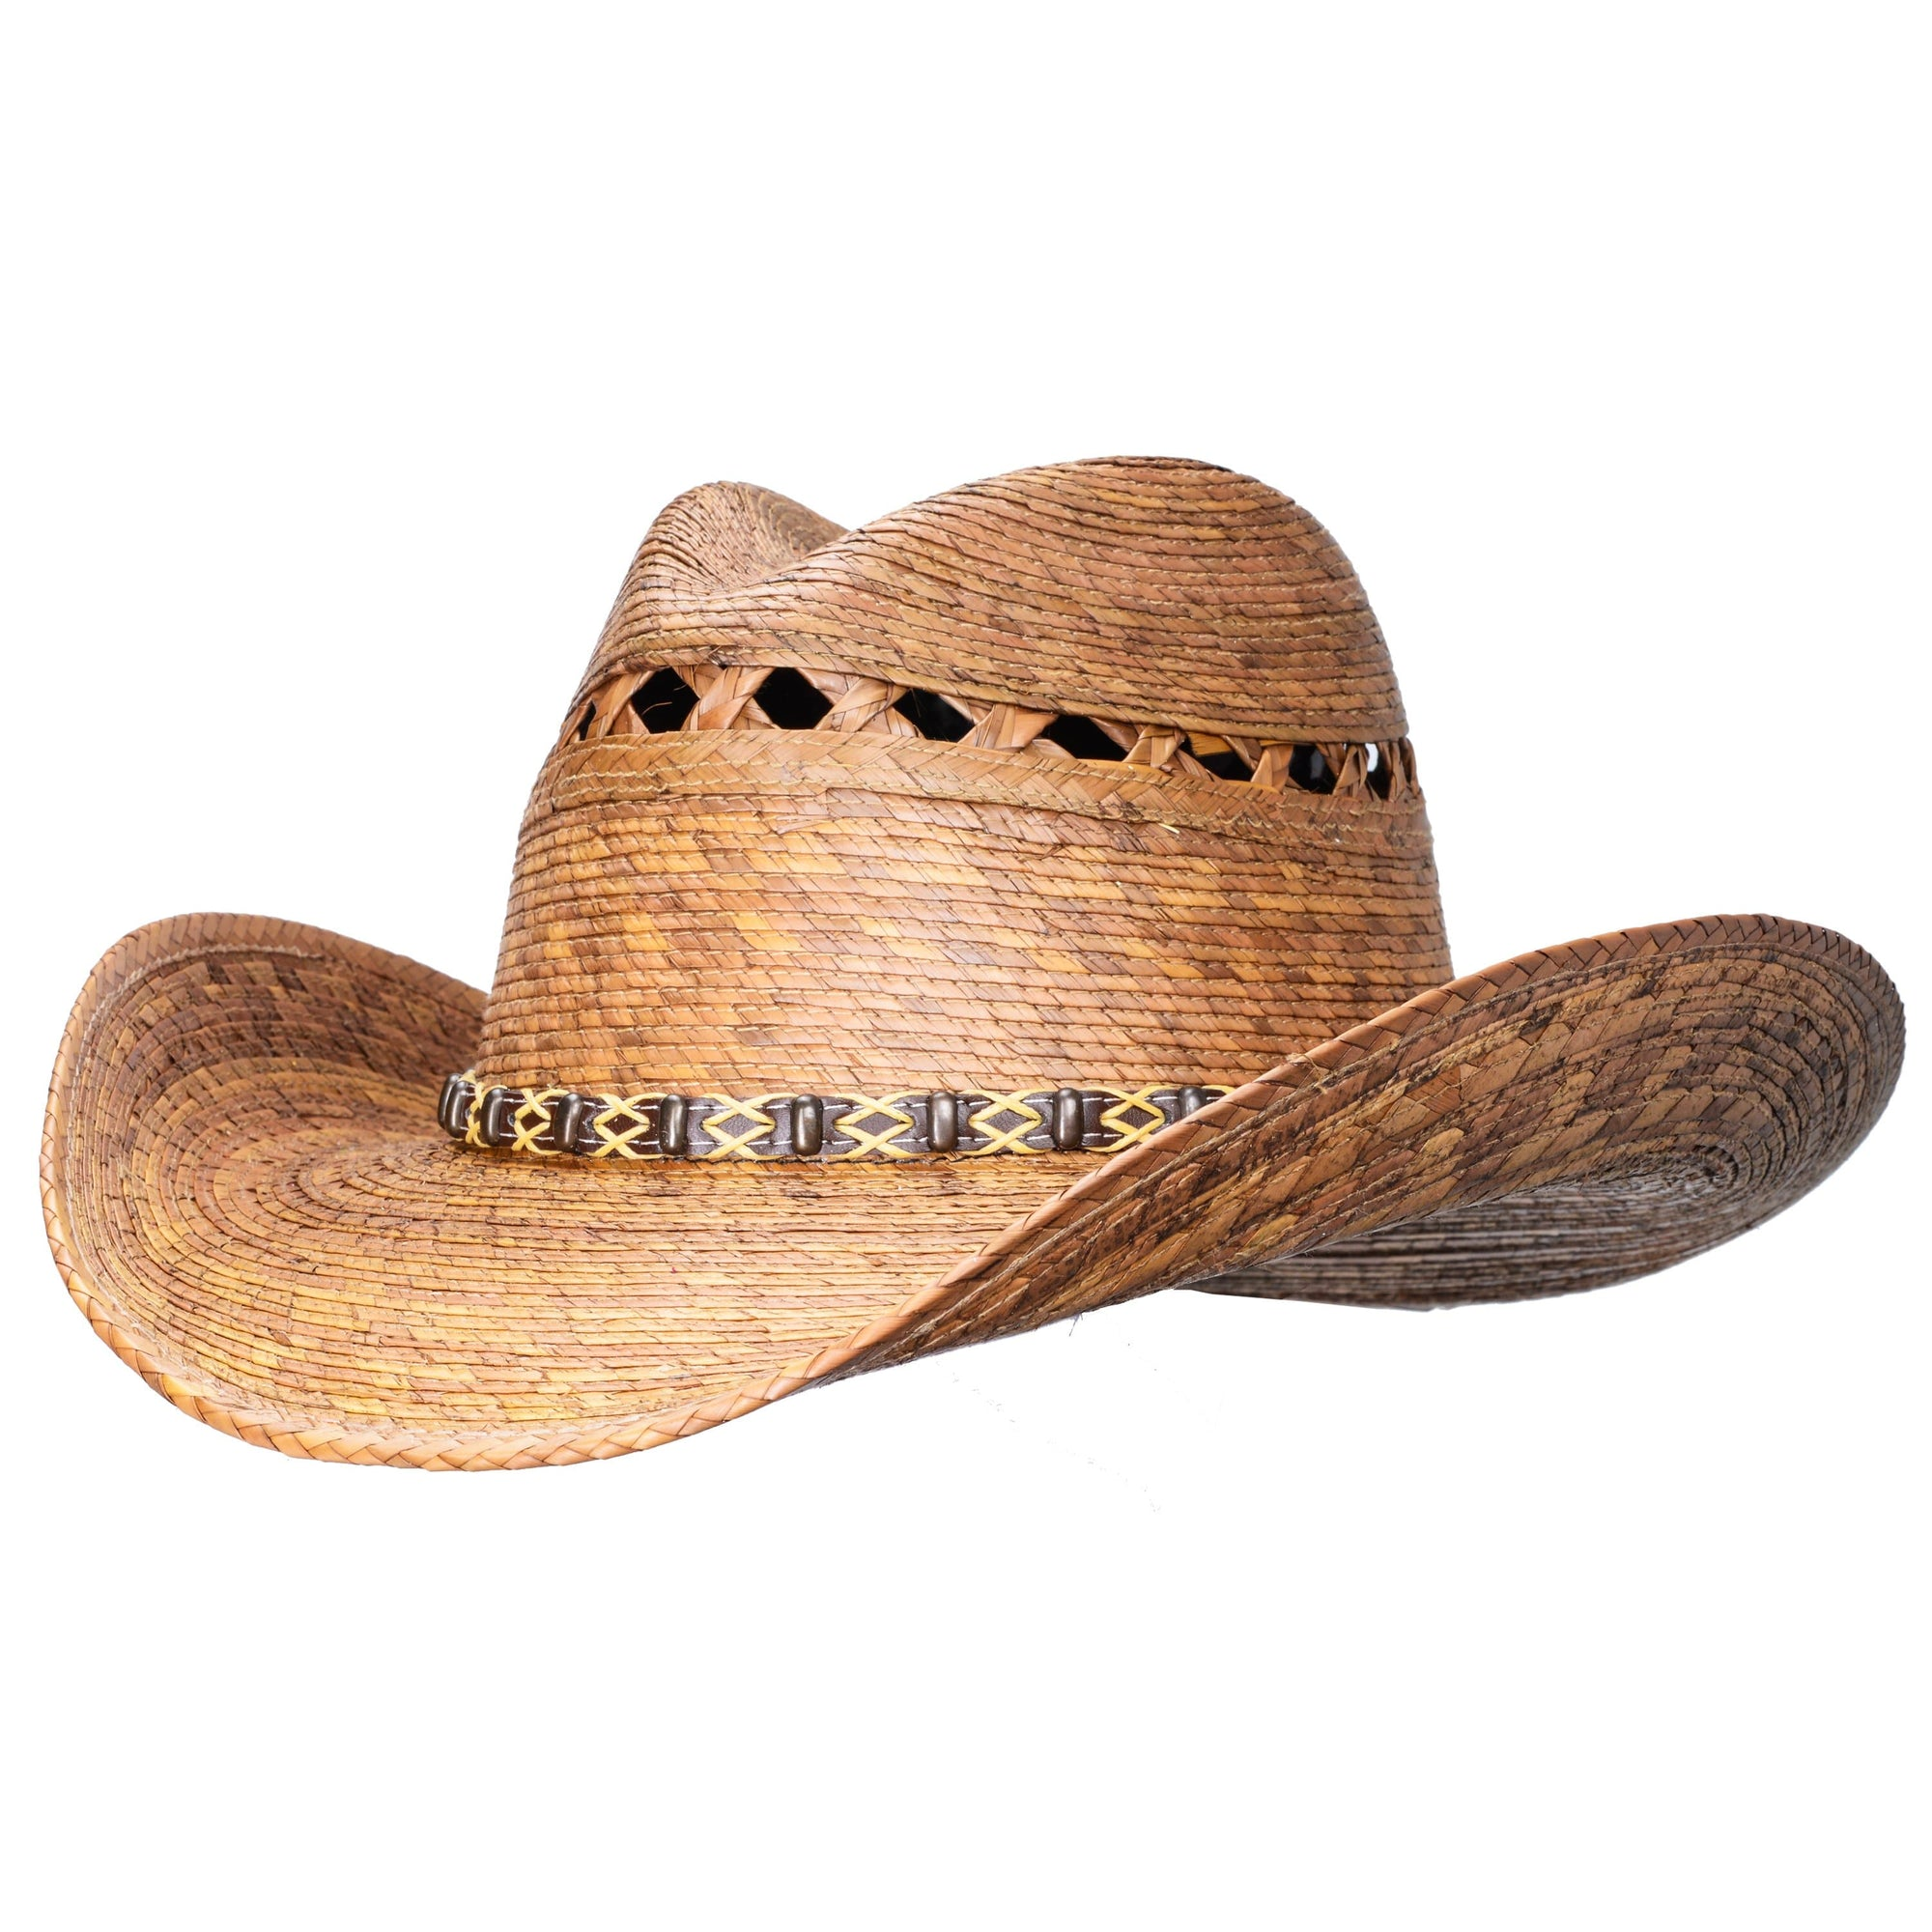 Shapeable  palm straw cowboy hat with attitude. Water resistant and durable.